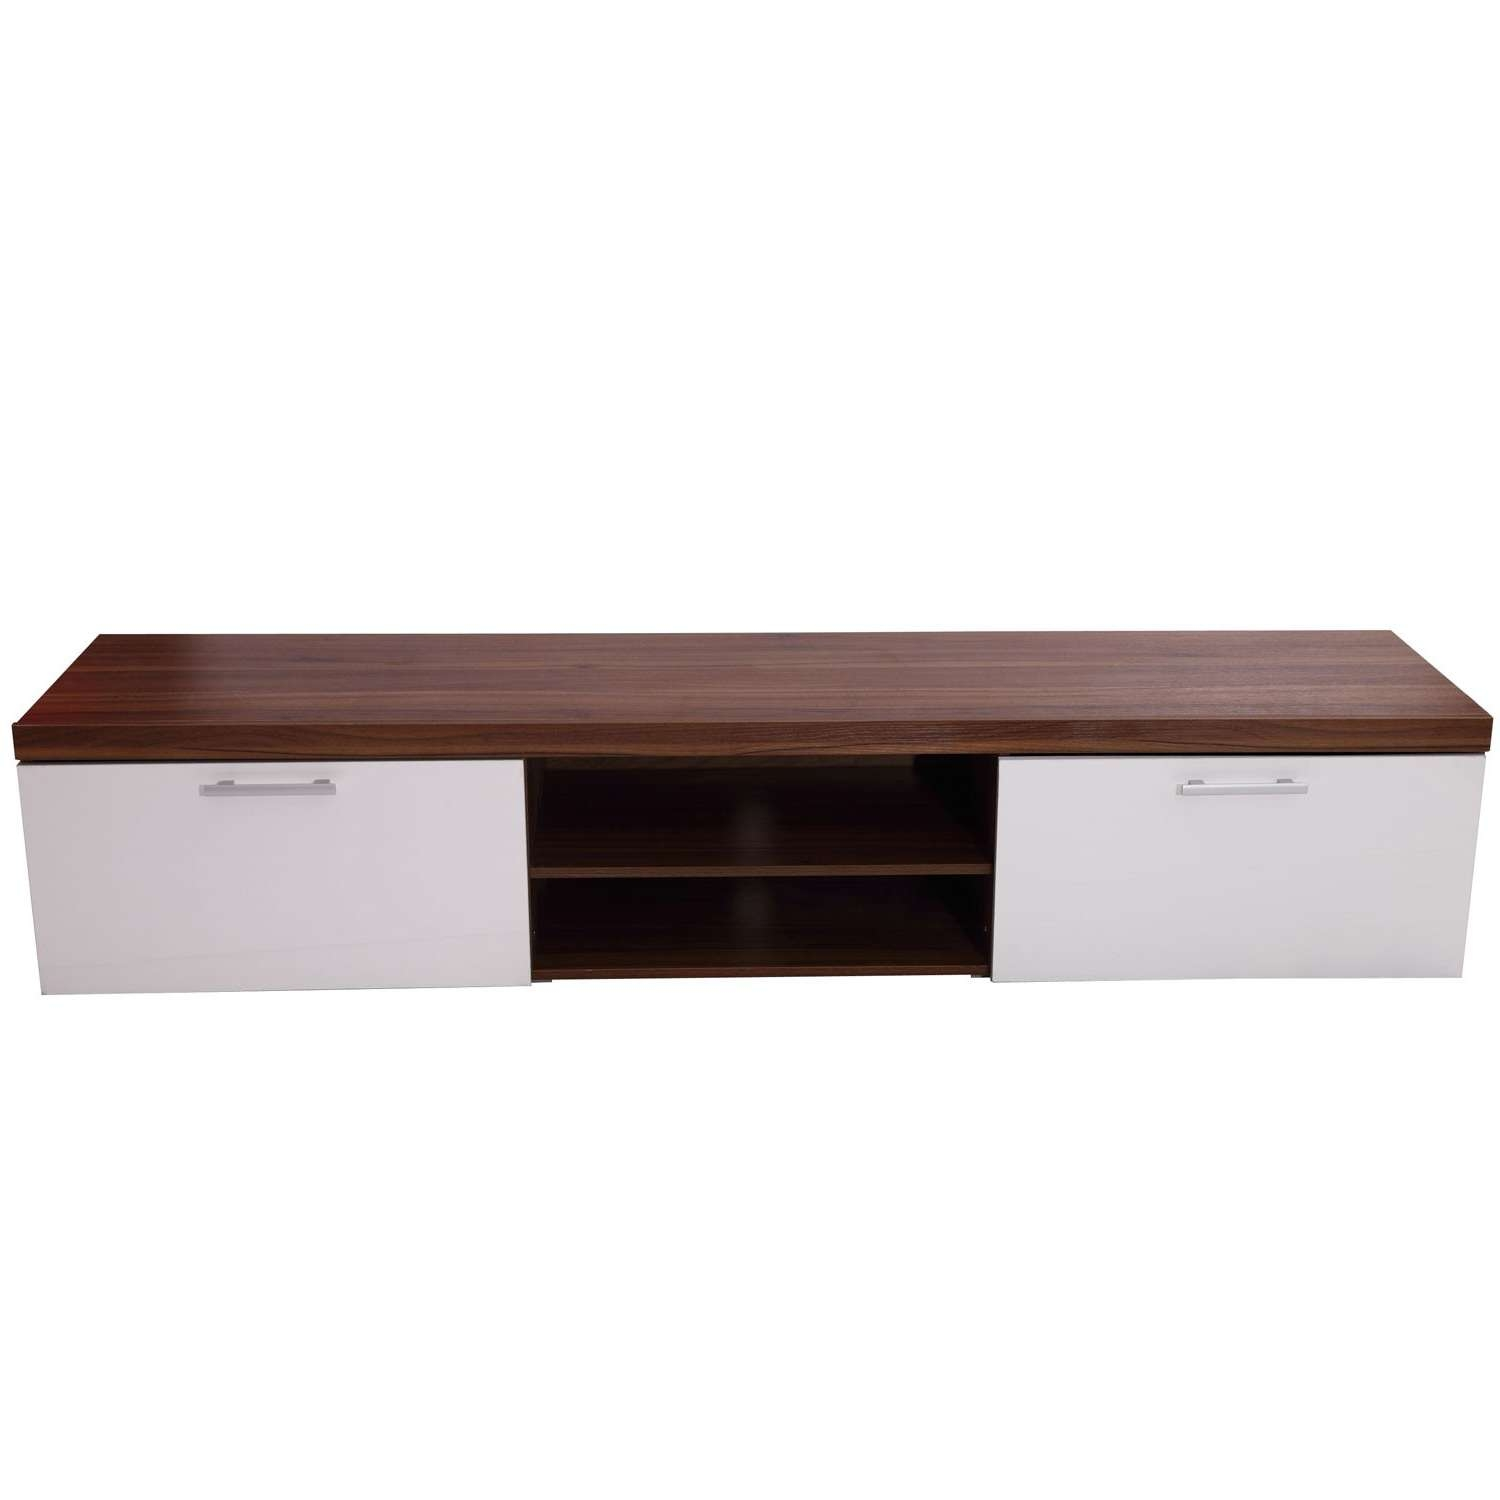 Homcom Tv Cabinet Unit, 2 High Gloss Doors White/walnut With Regard To Walnut Tv Cabinets With Doors (View 5 of 20)